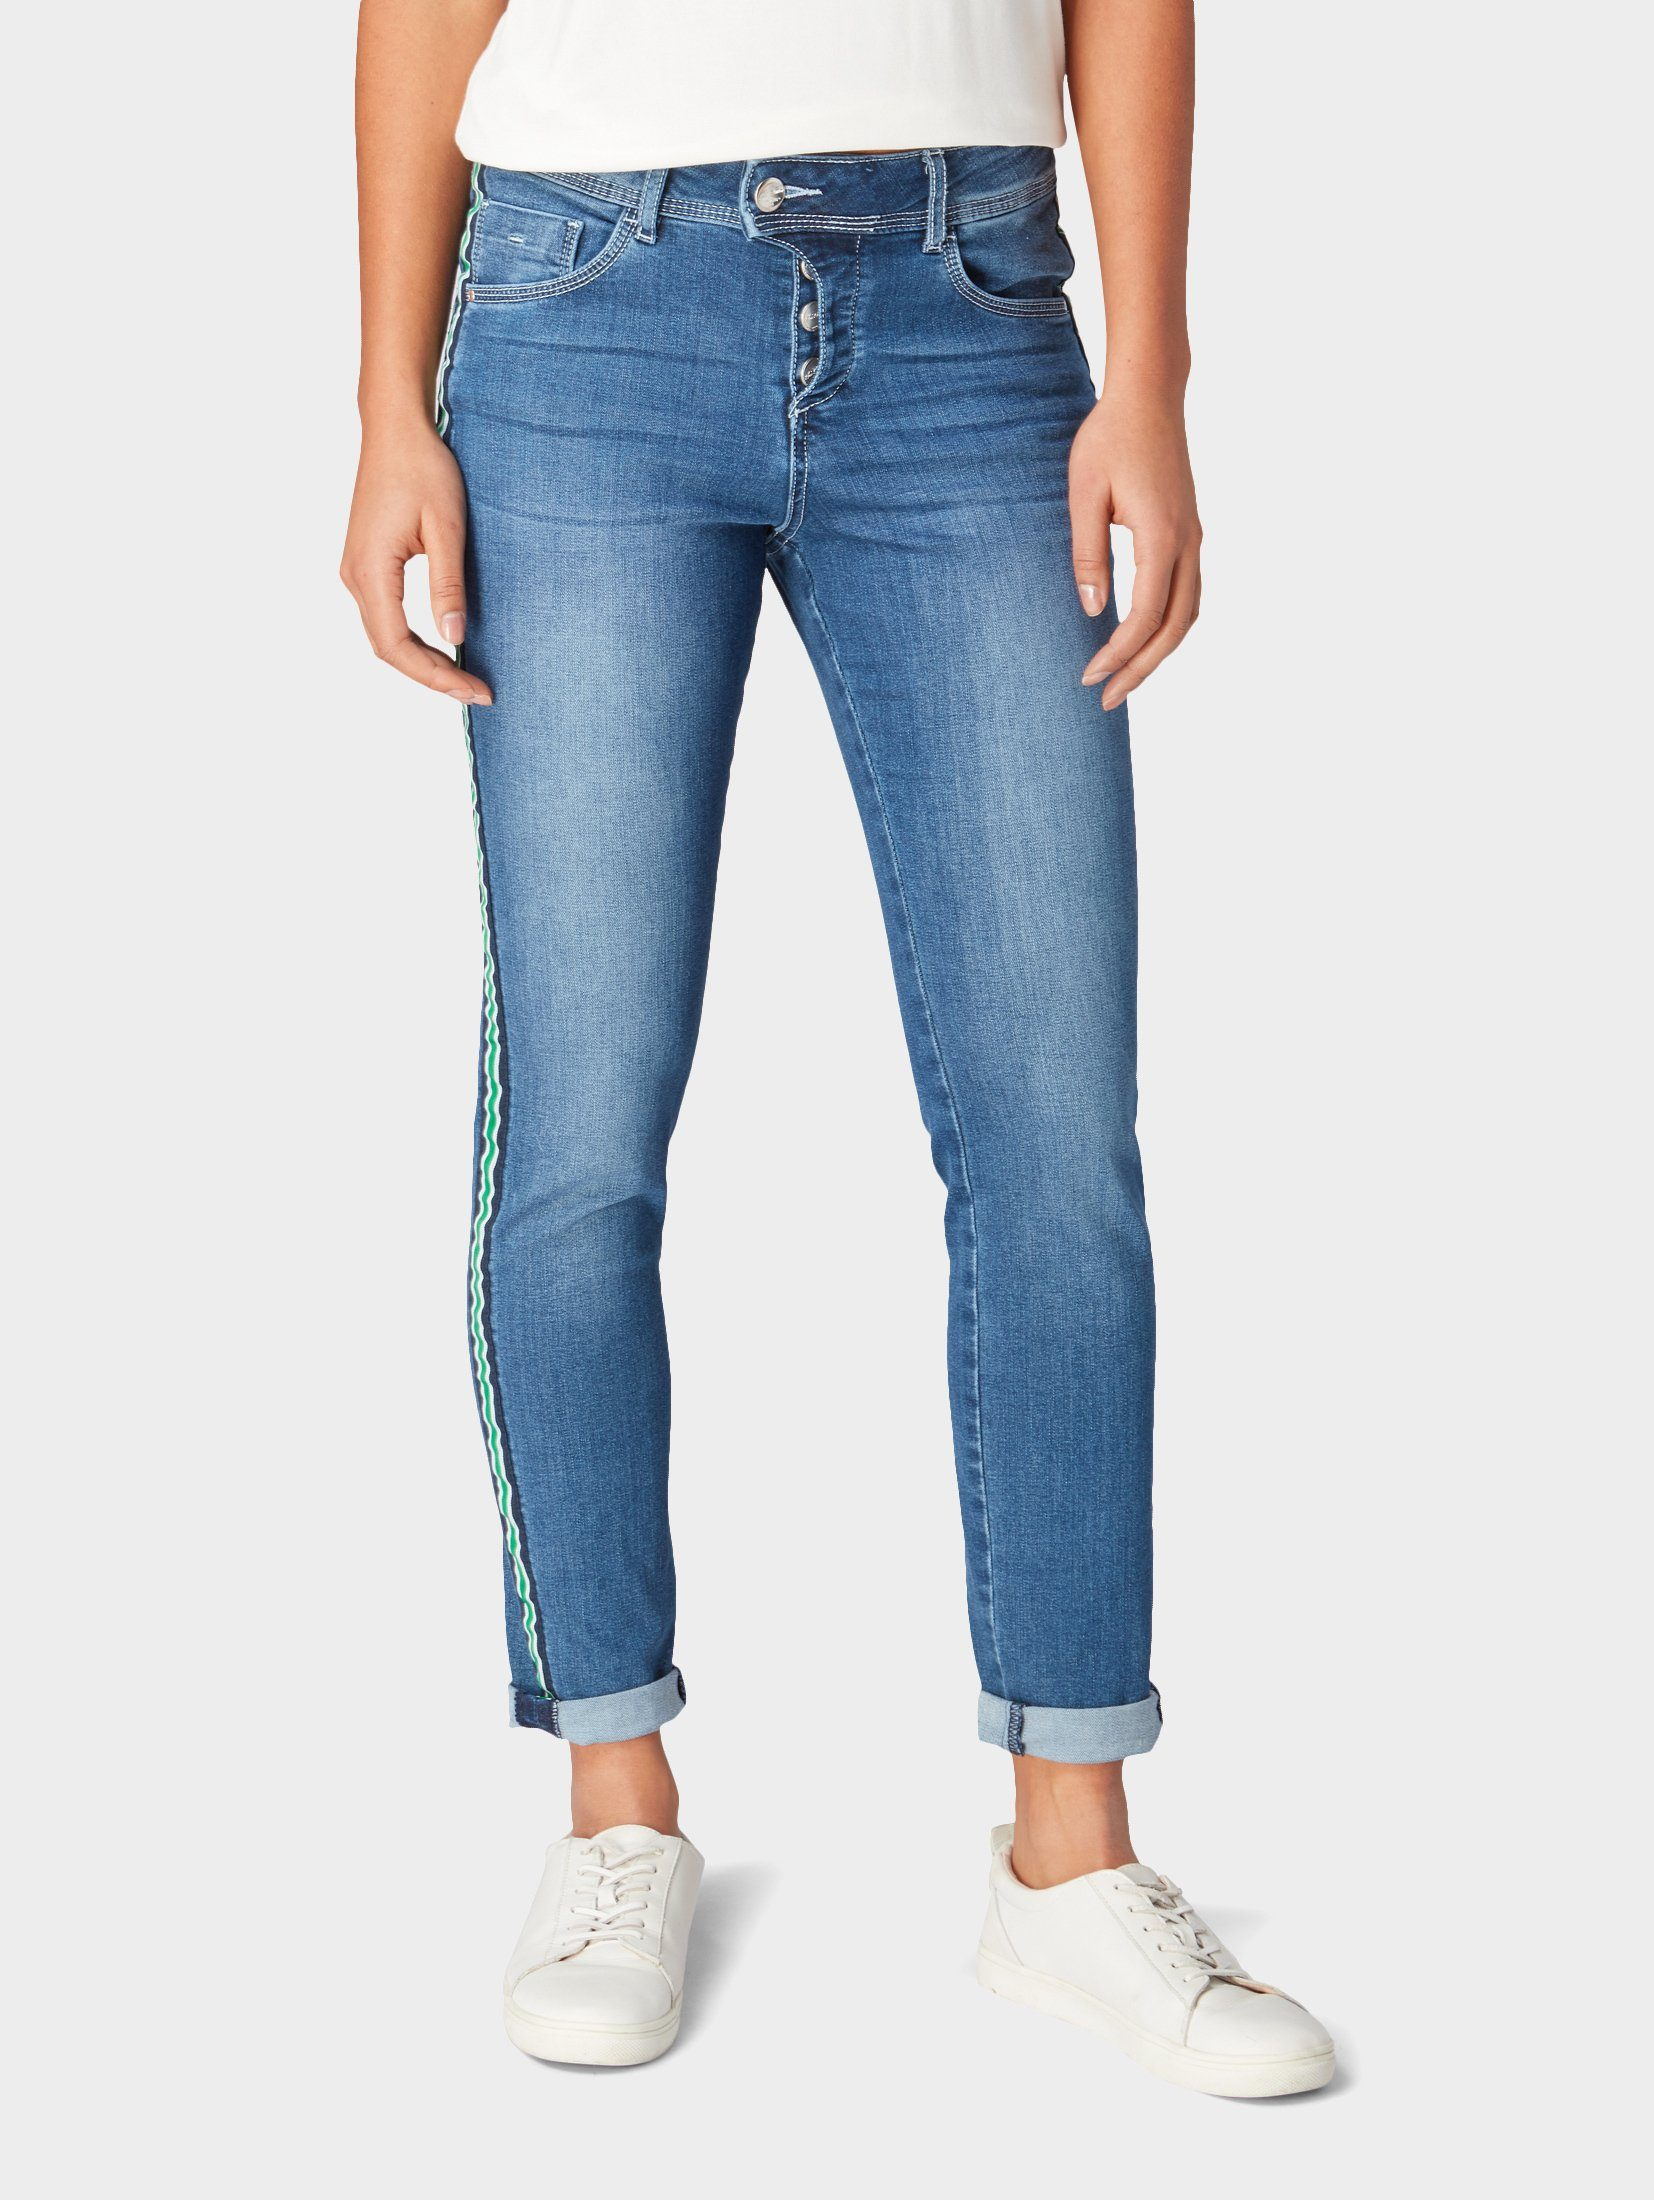 TOM TAILOR Regular fit Jeans »Relaxed Tapered Jeans « online kaufen   OTTO